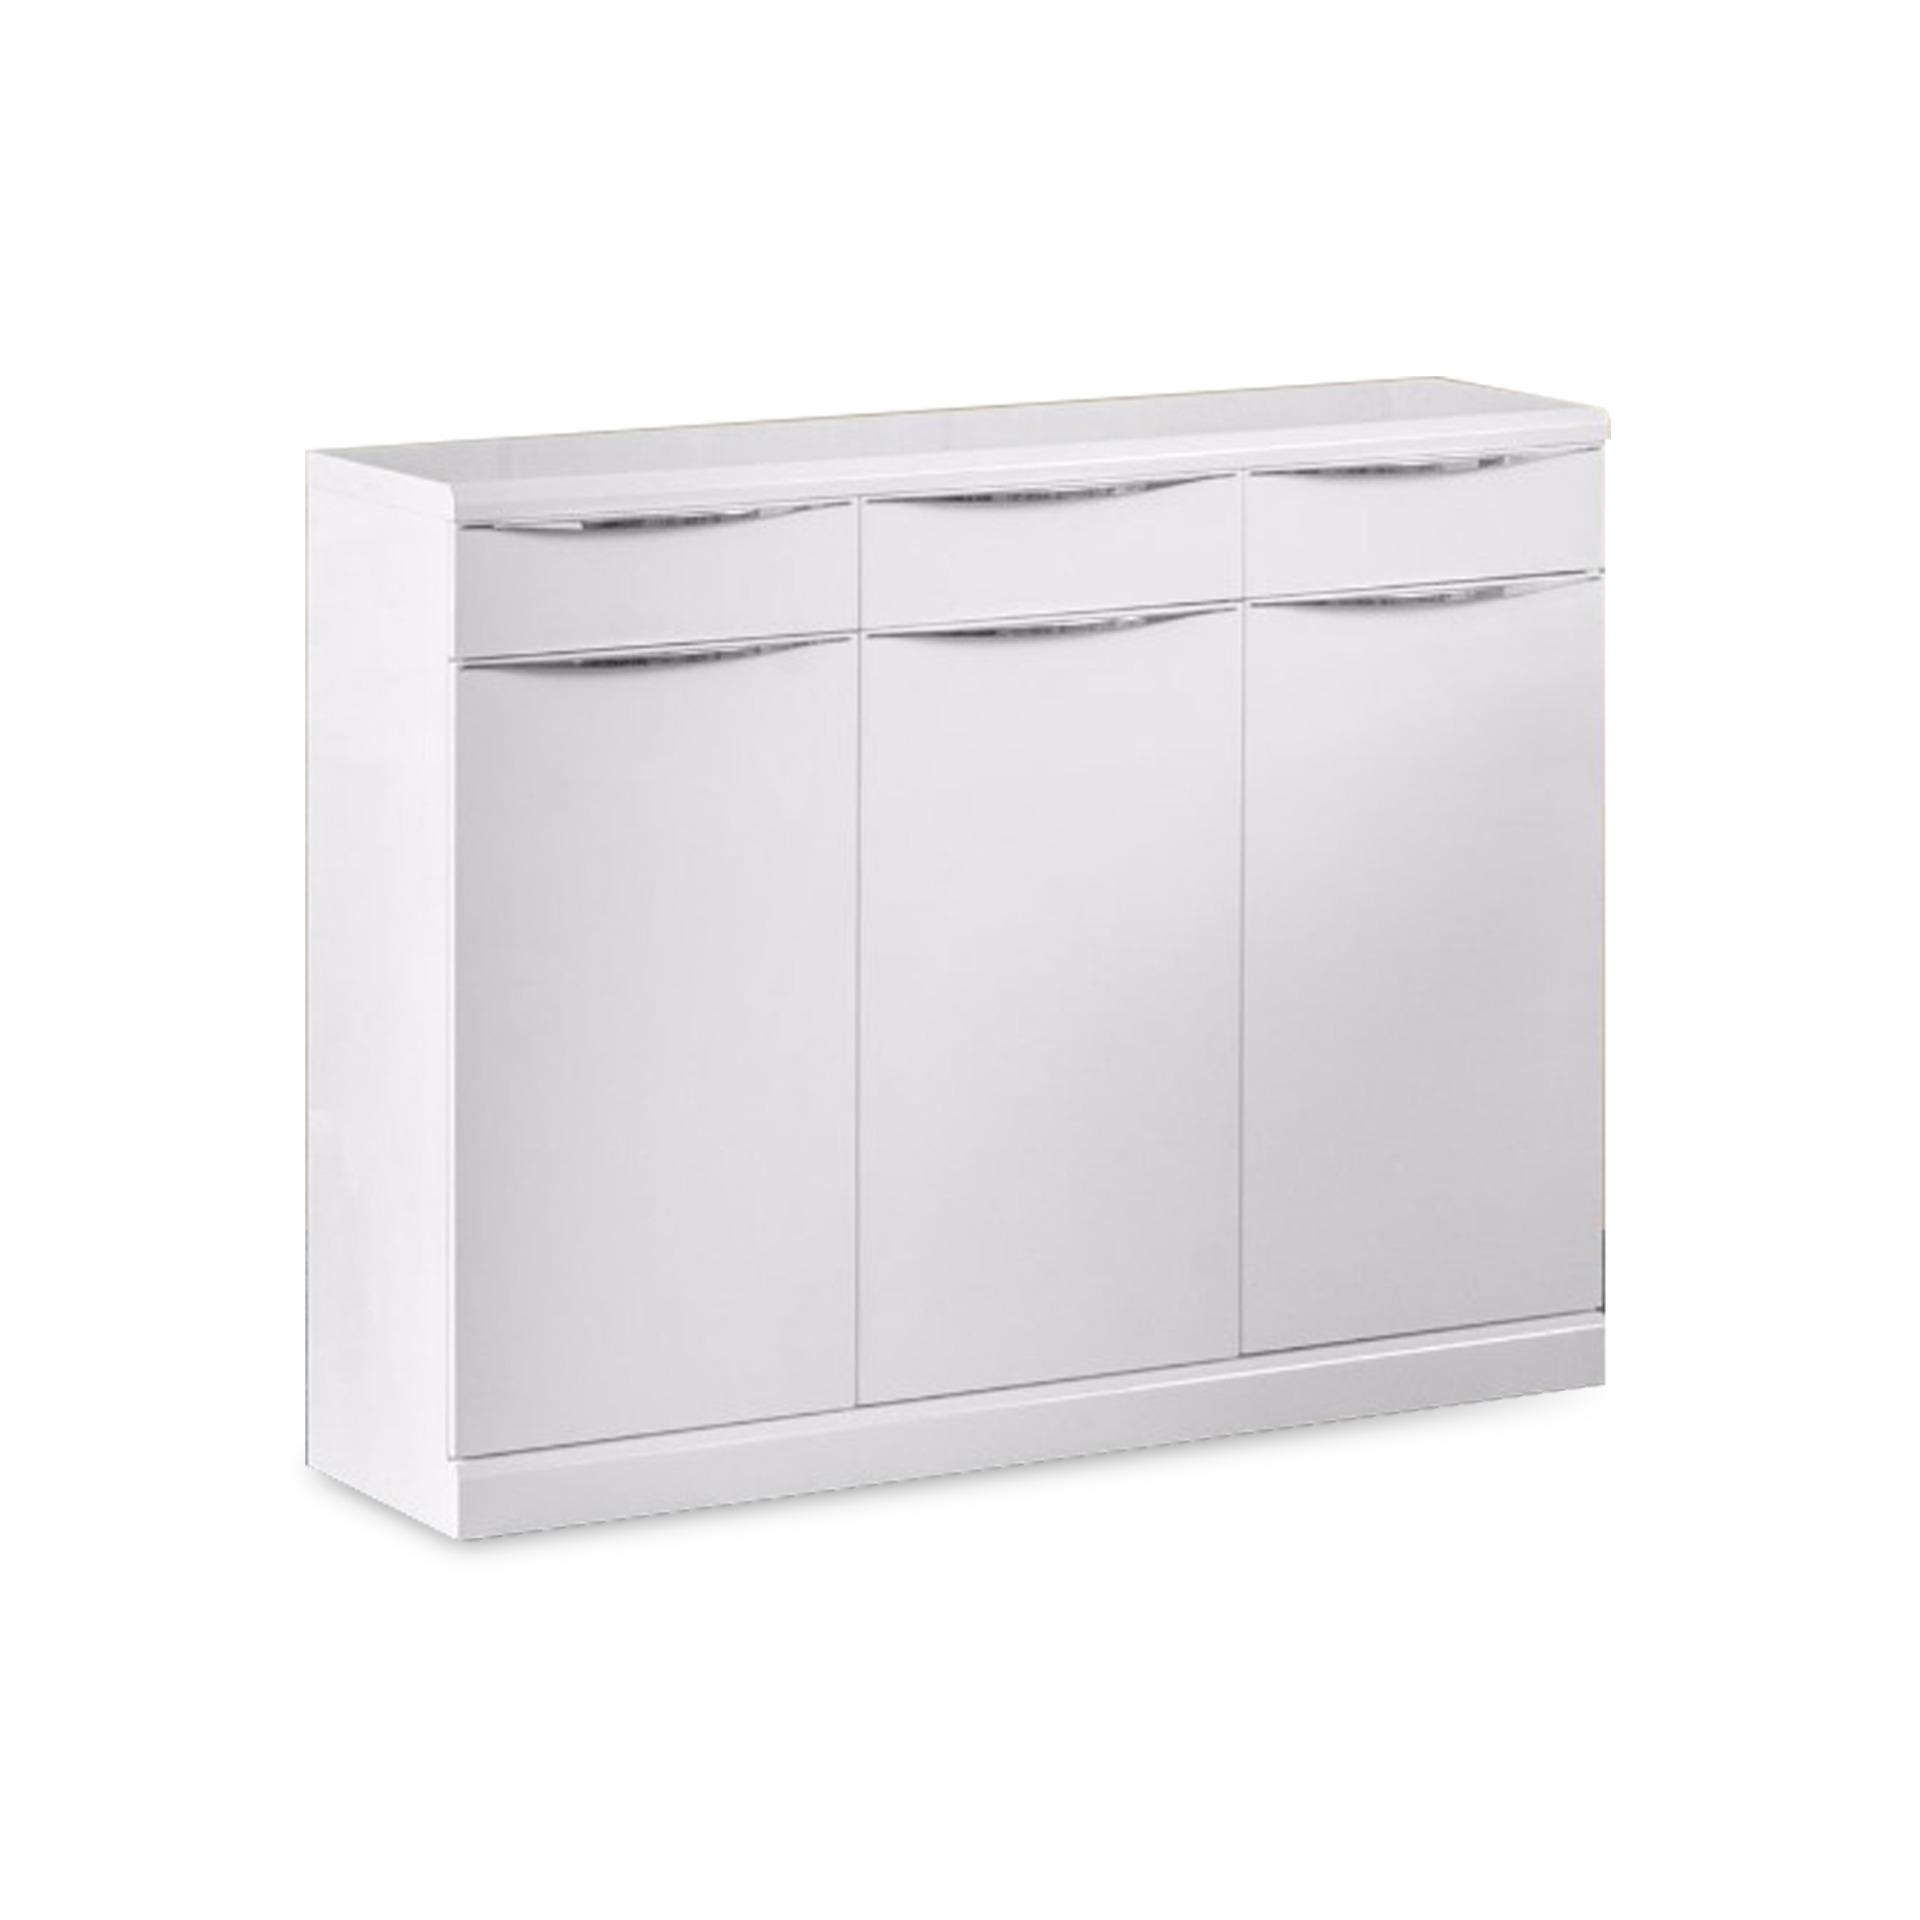 Amaud 3 Doors Shoe Cabinet (FREE DELIVERY)(FREE ASSEMBLY)